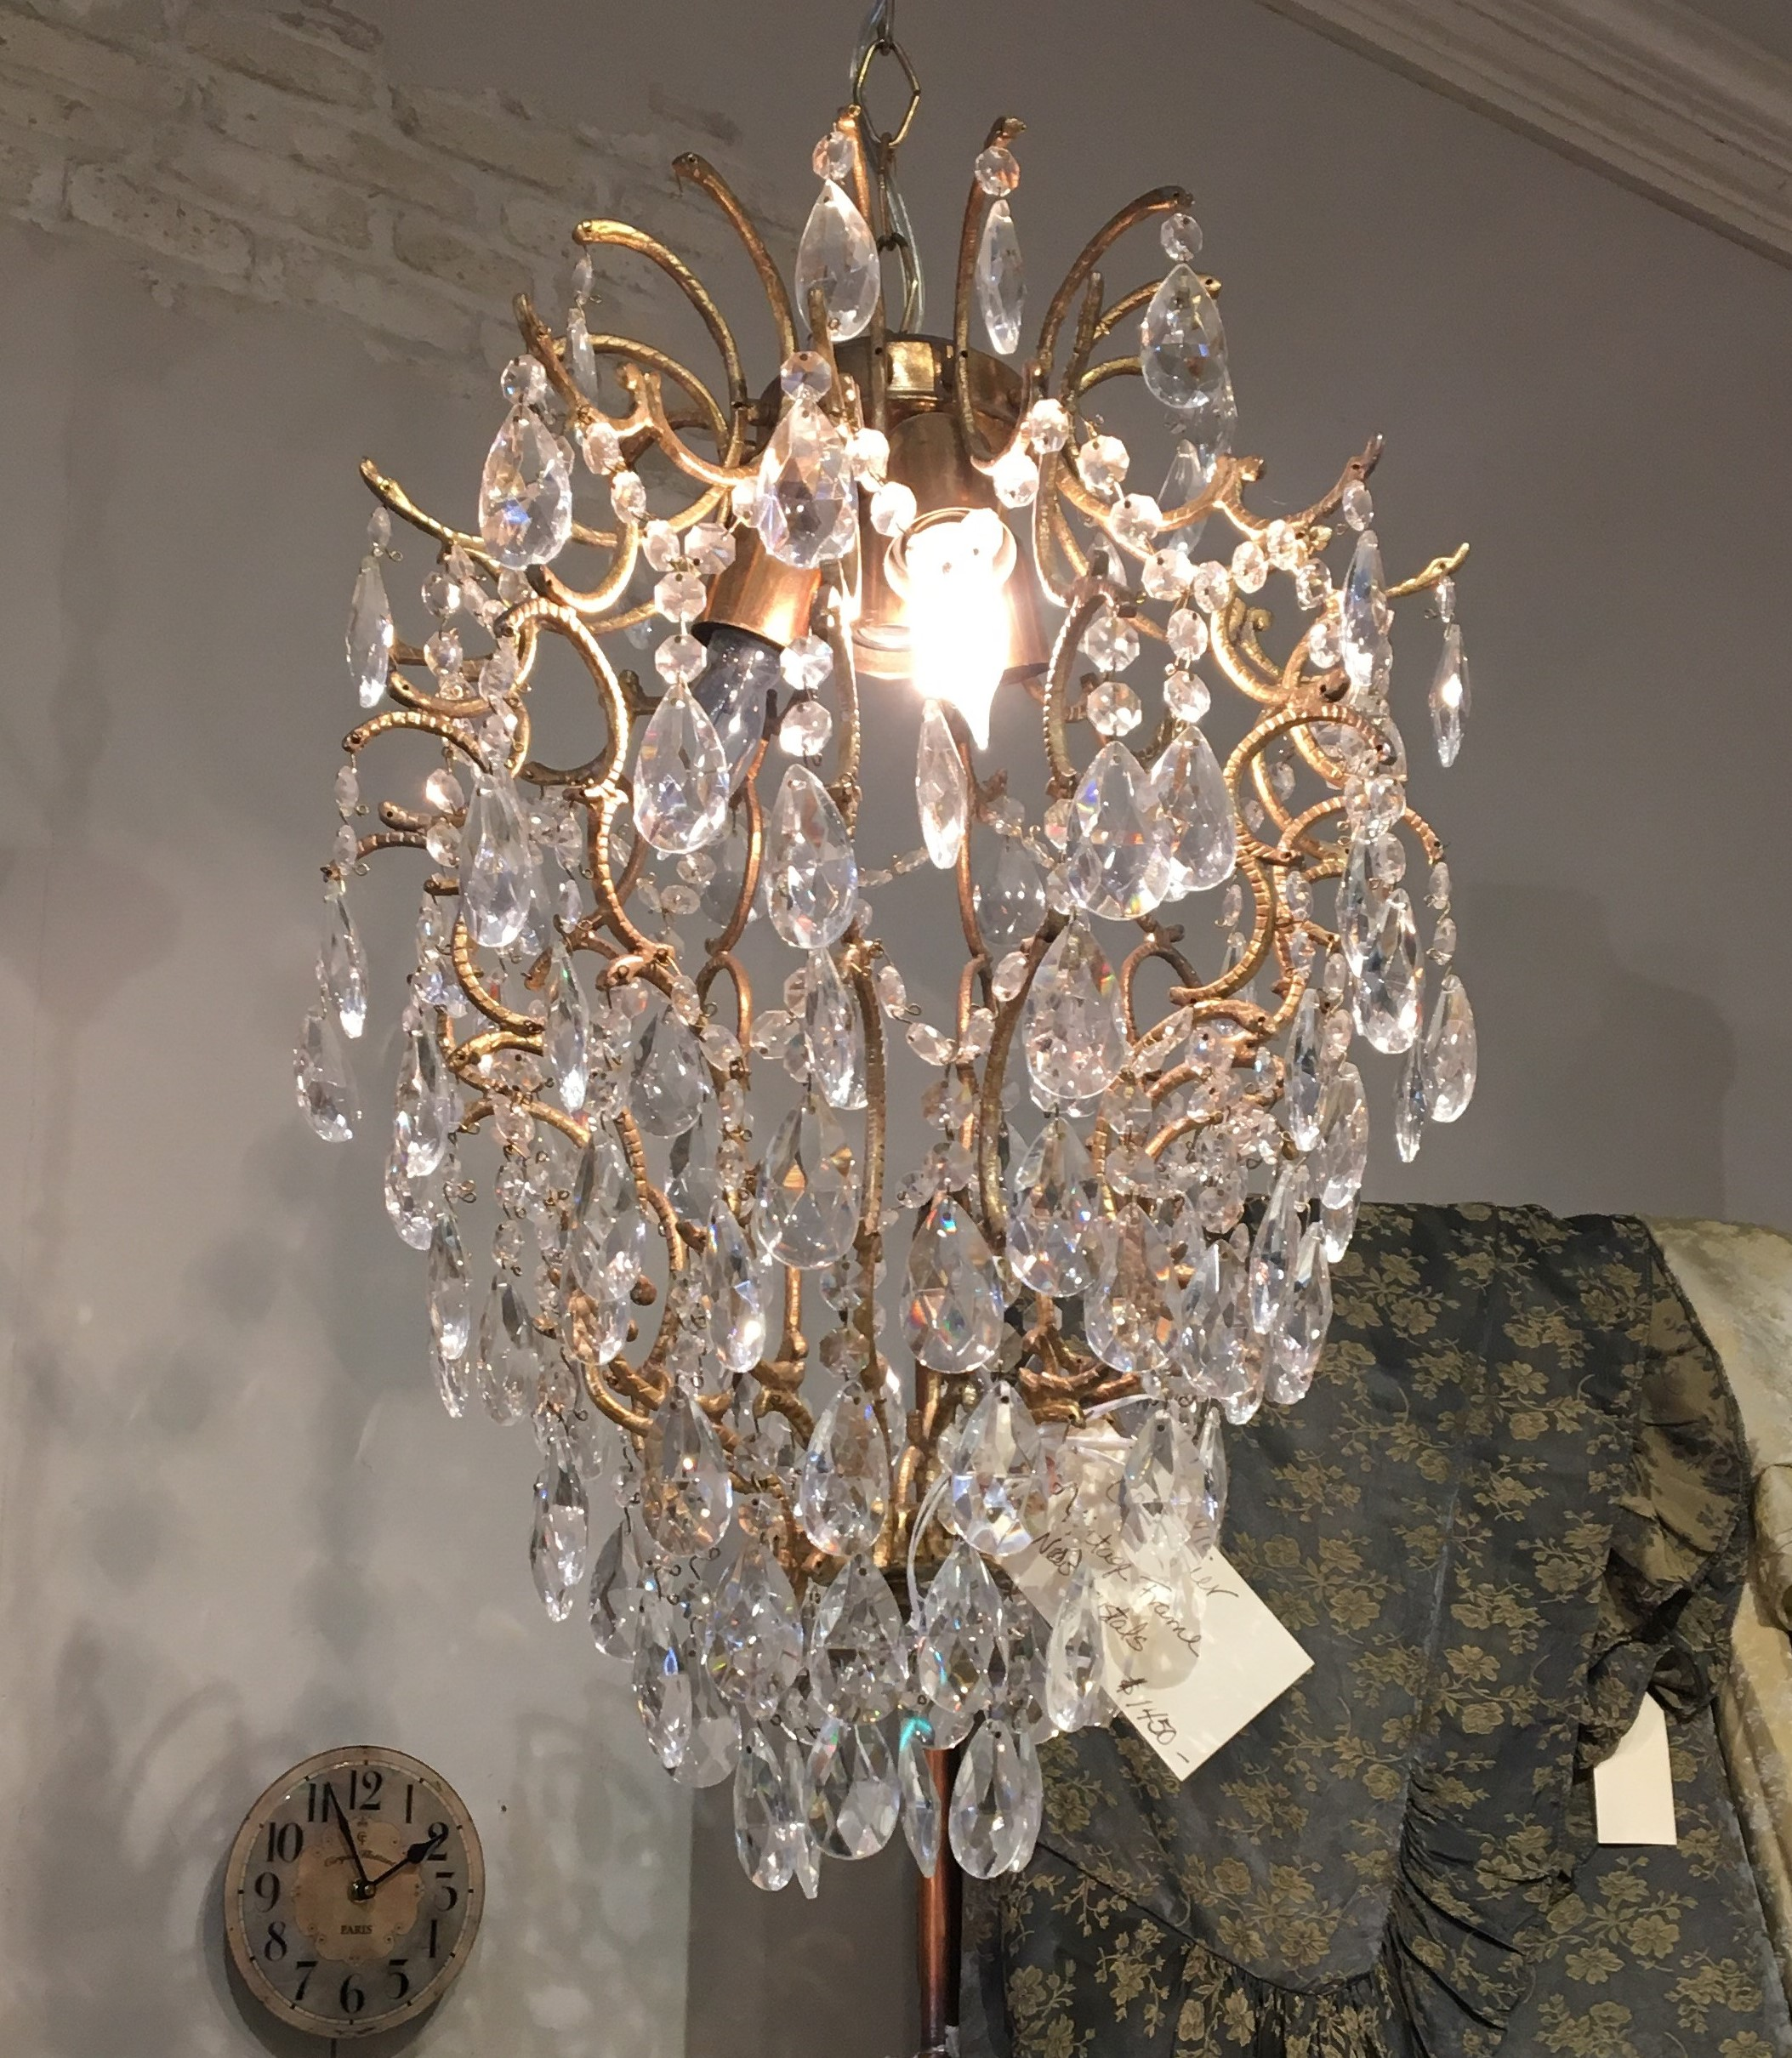 This chandelier would look fabulous in a girls room or small eating area.